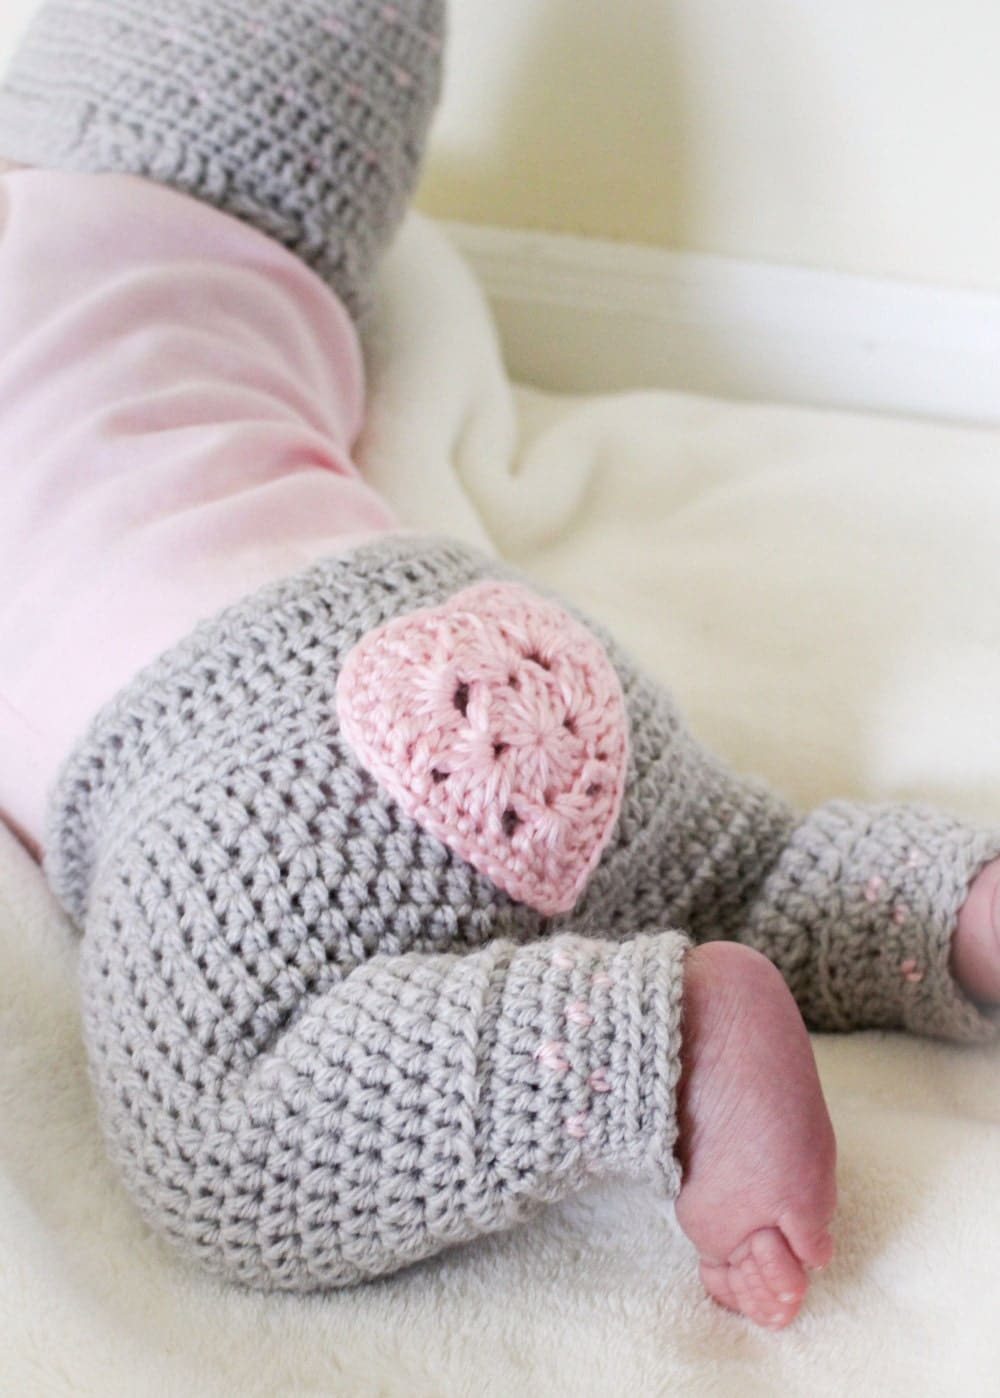 f22ba430e296 Valentines day baby outfit - Crochet valentines hat - Newborn girl ...